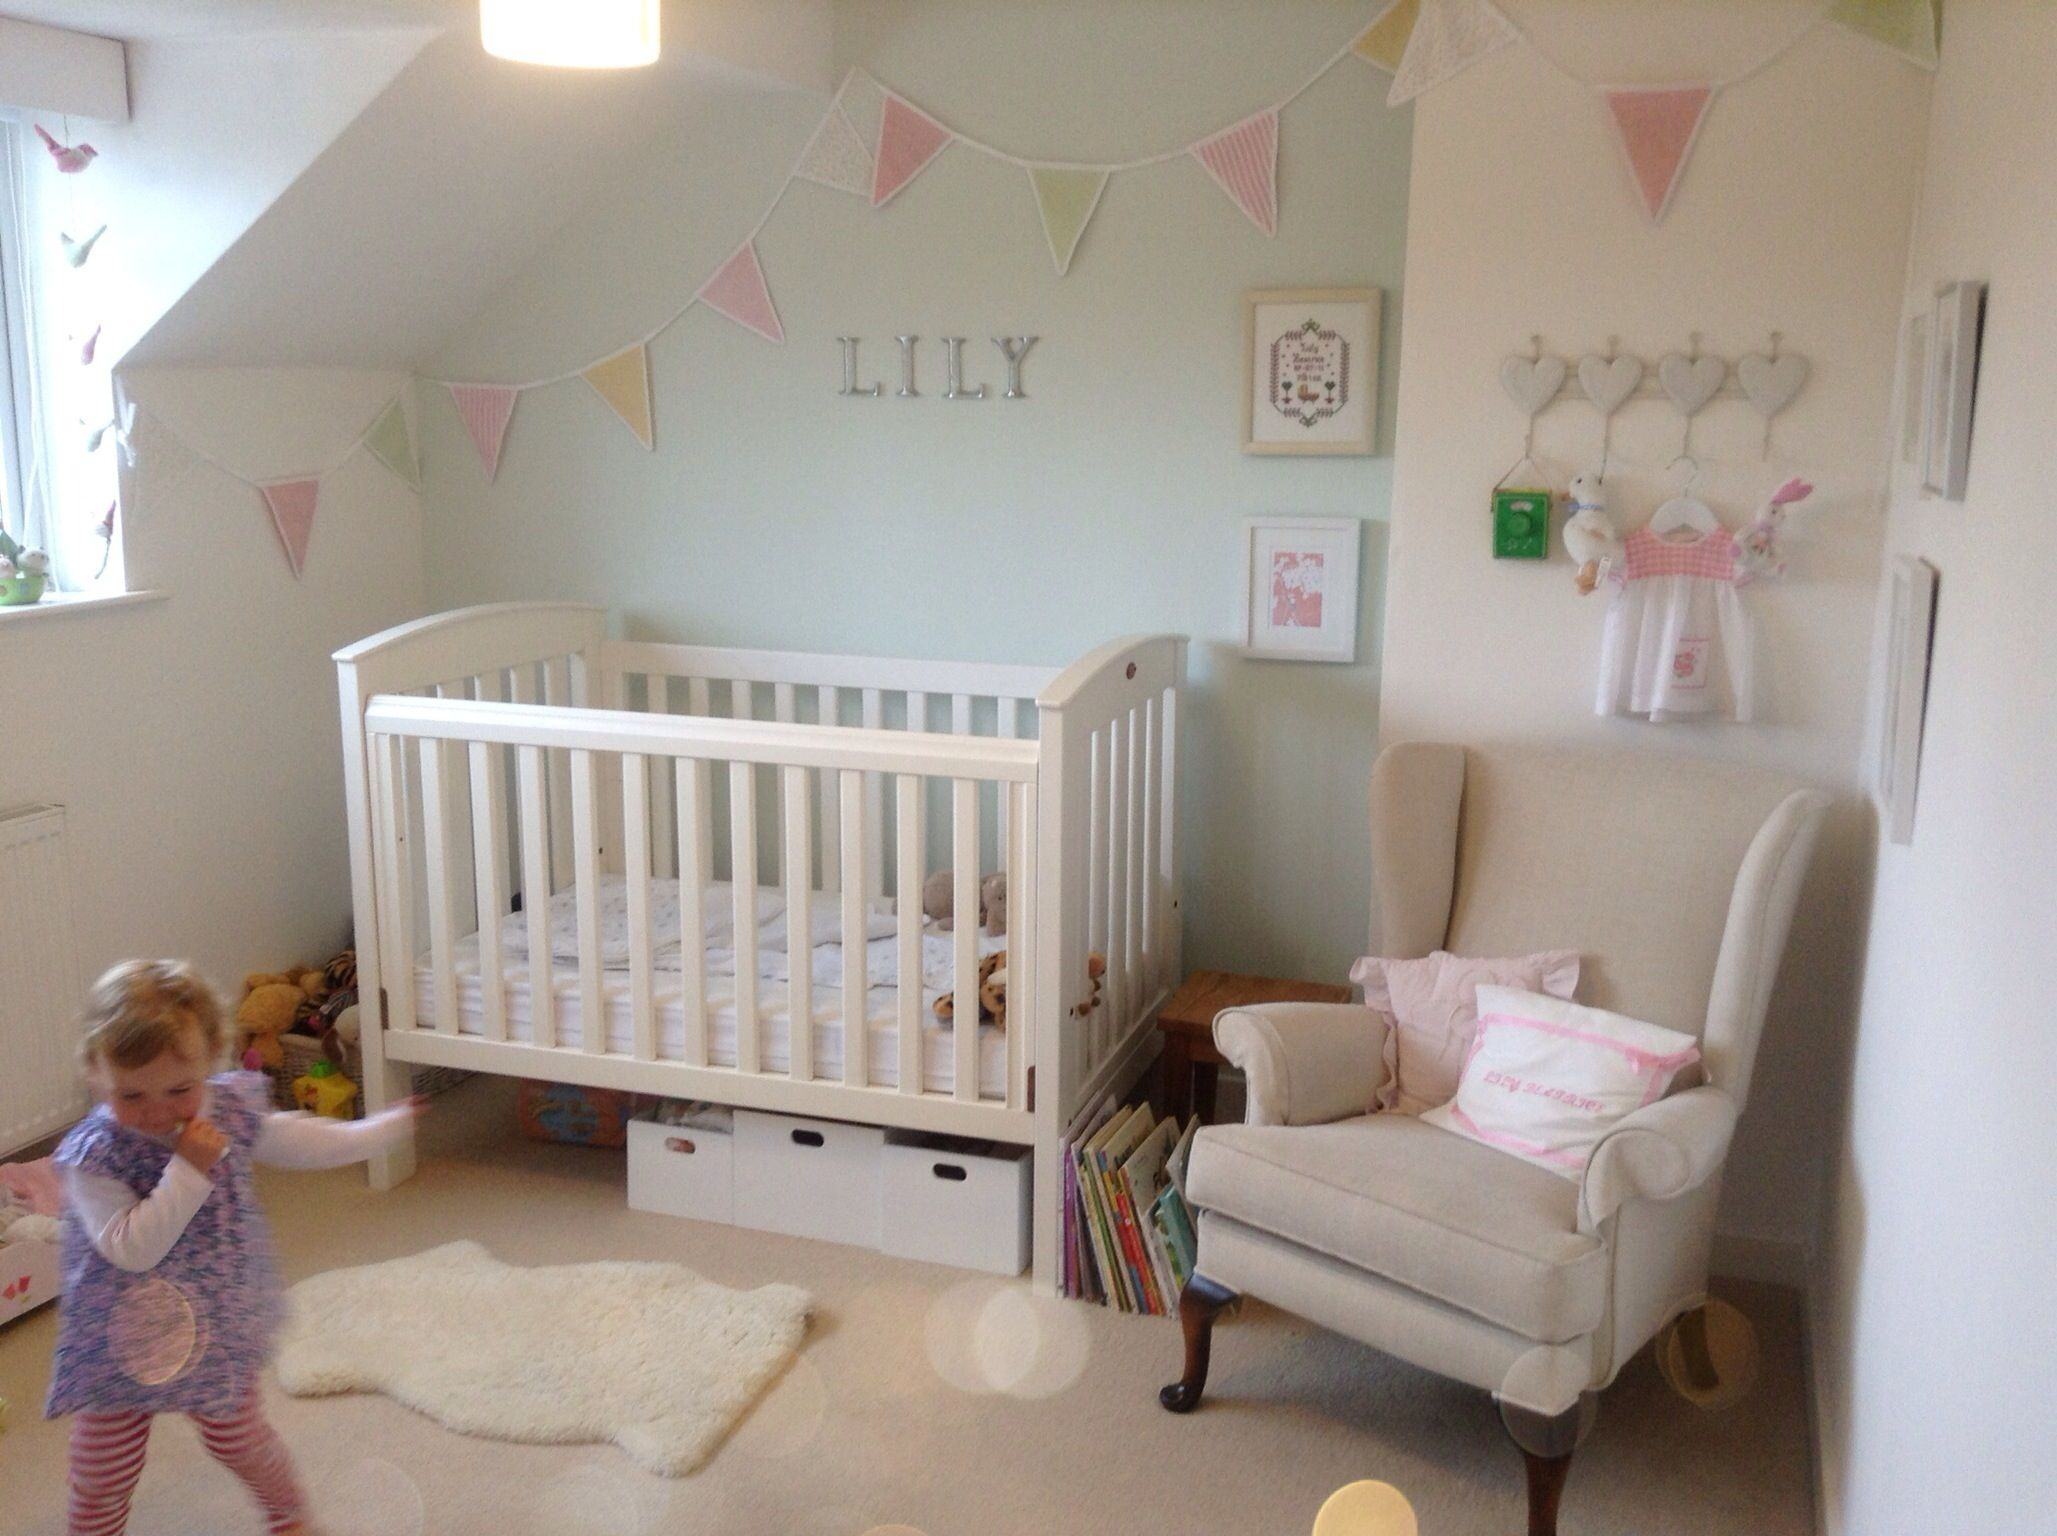 New Bedroom Lilys New Bedroom Eau De Nil Bunting Lily Living